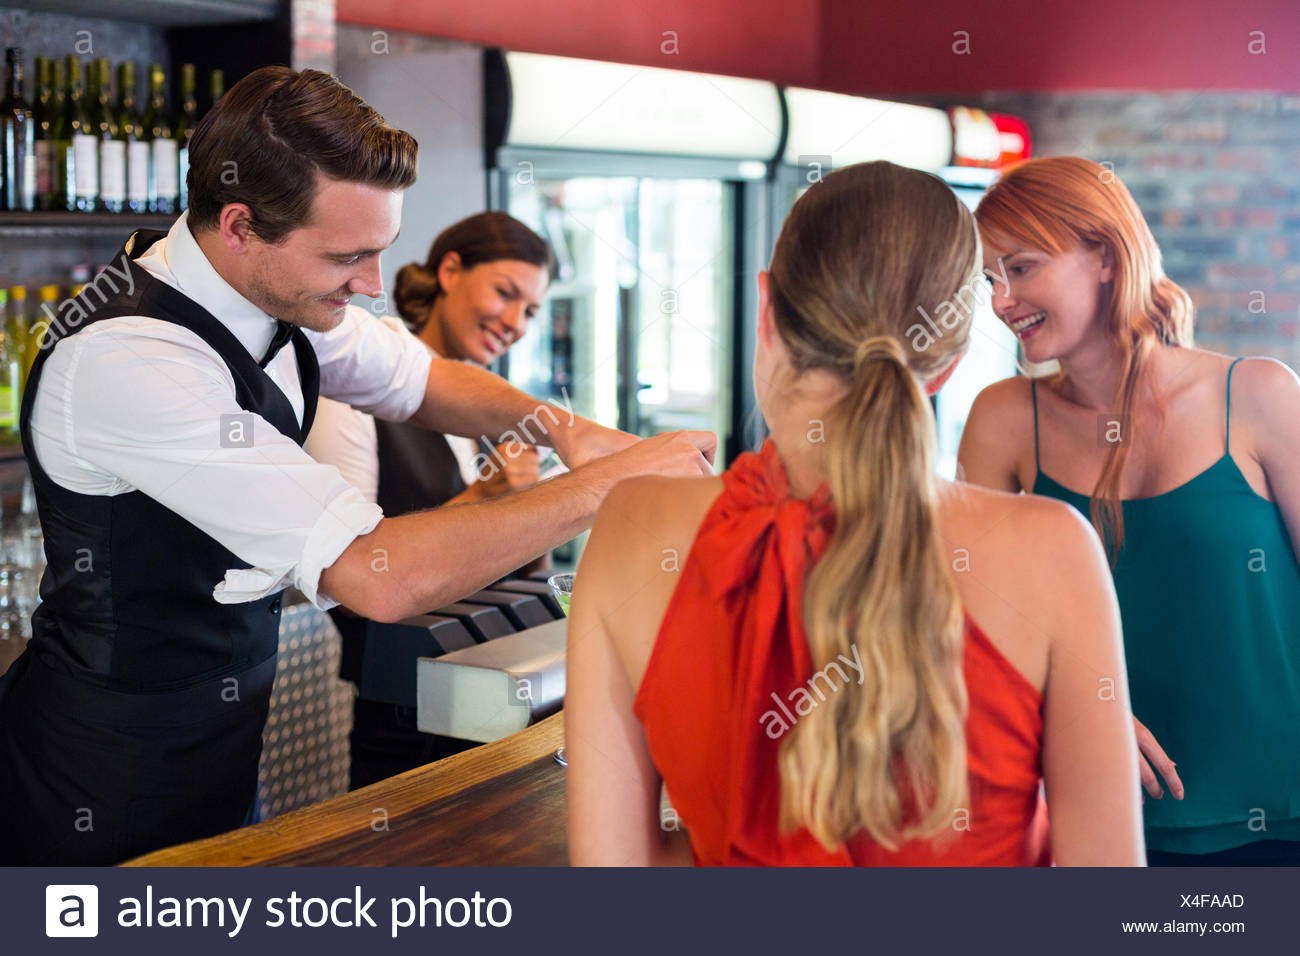 Friends standing at counter while bartender preparing a drink - Stock Image